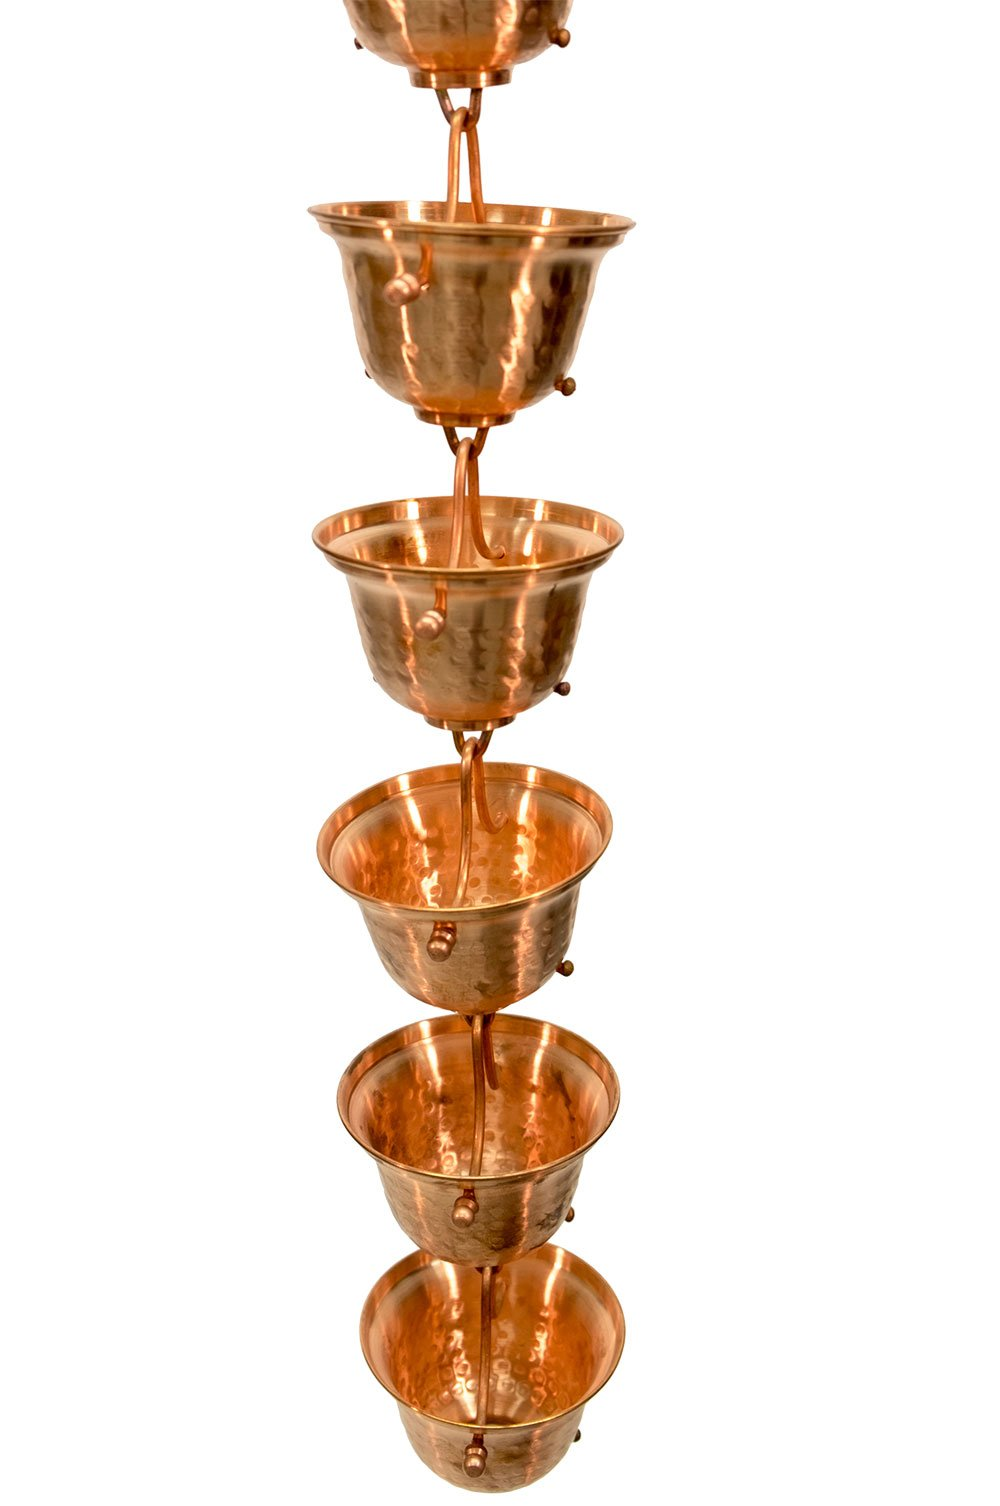 Copper Bells Rain Chain with Installation Kit (10 Foot) by Nutshell Stores